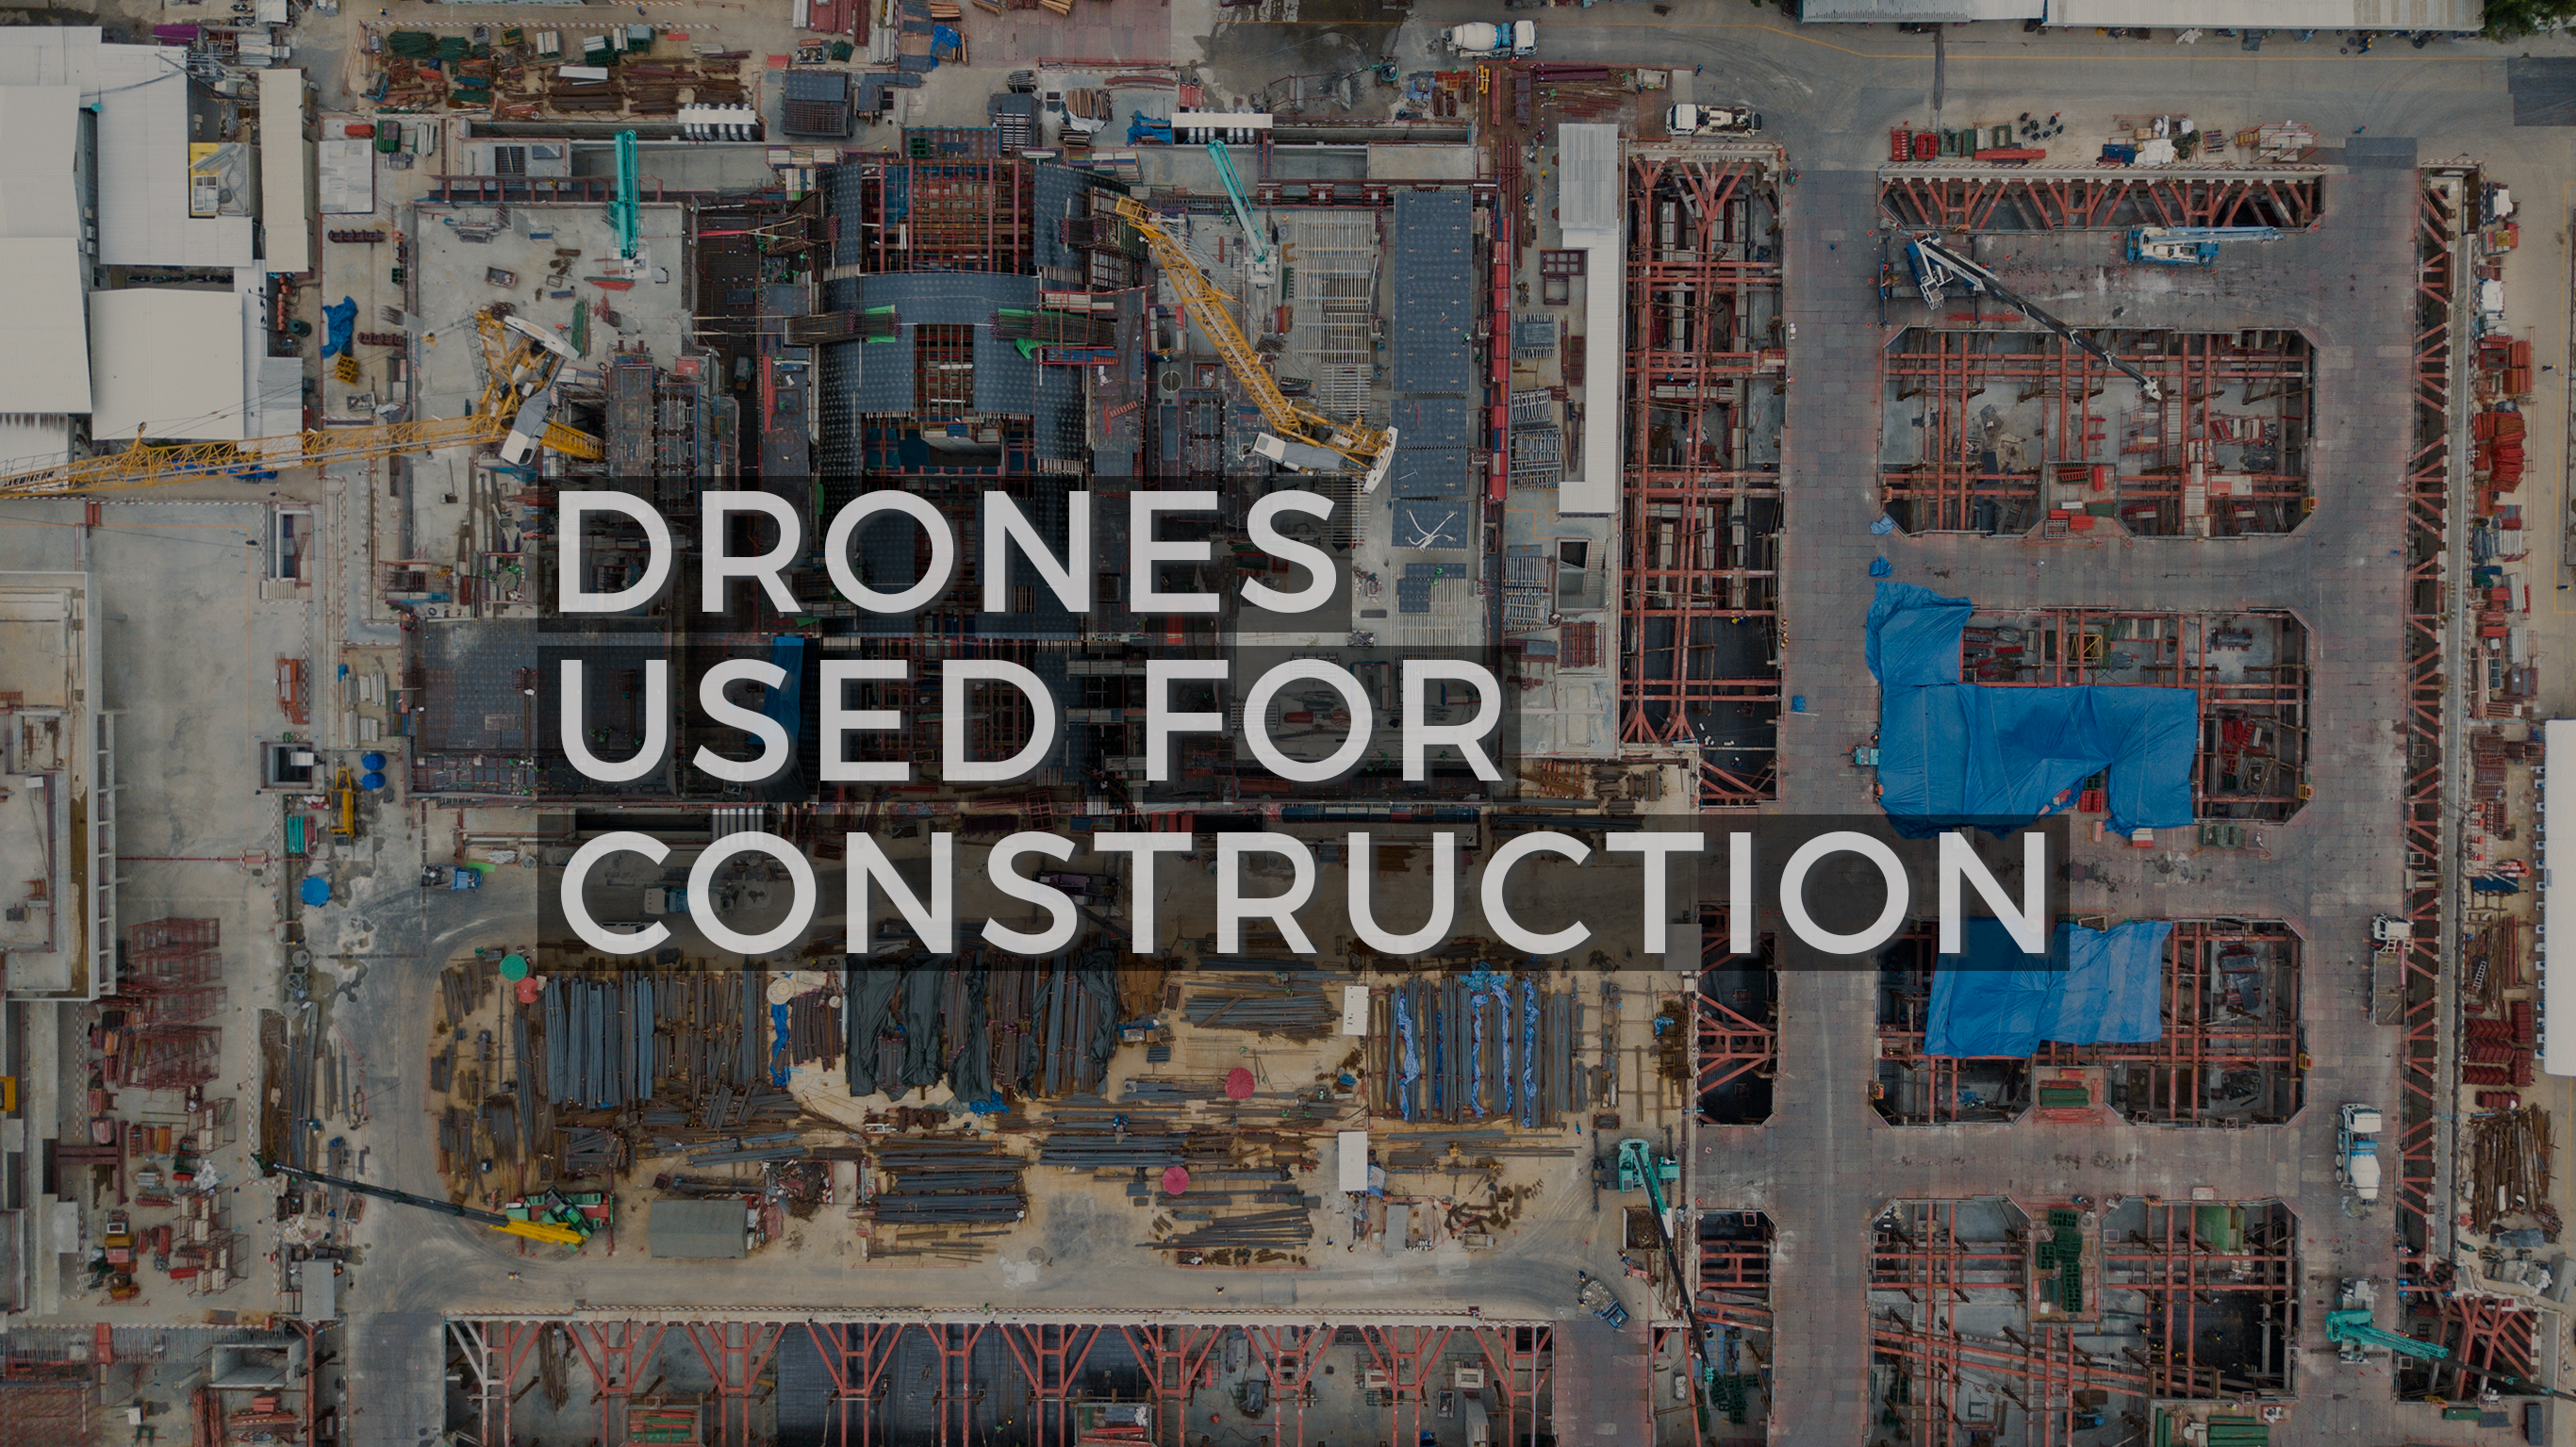 Construction photos using drones.